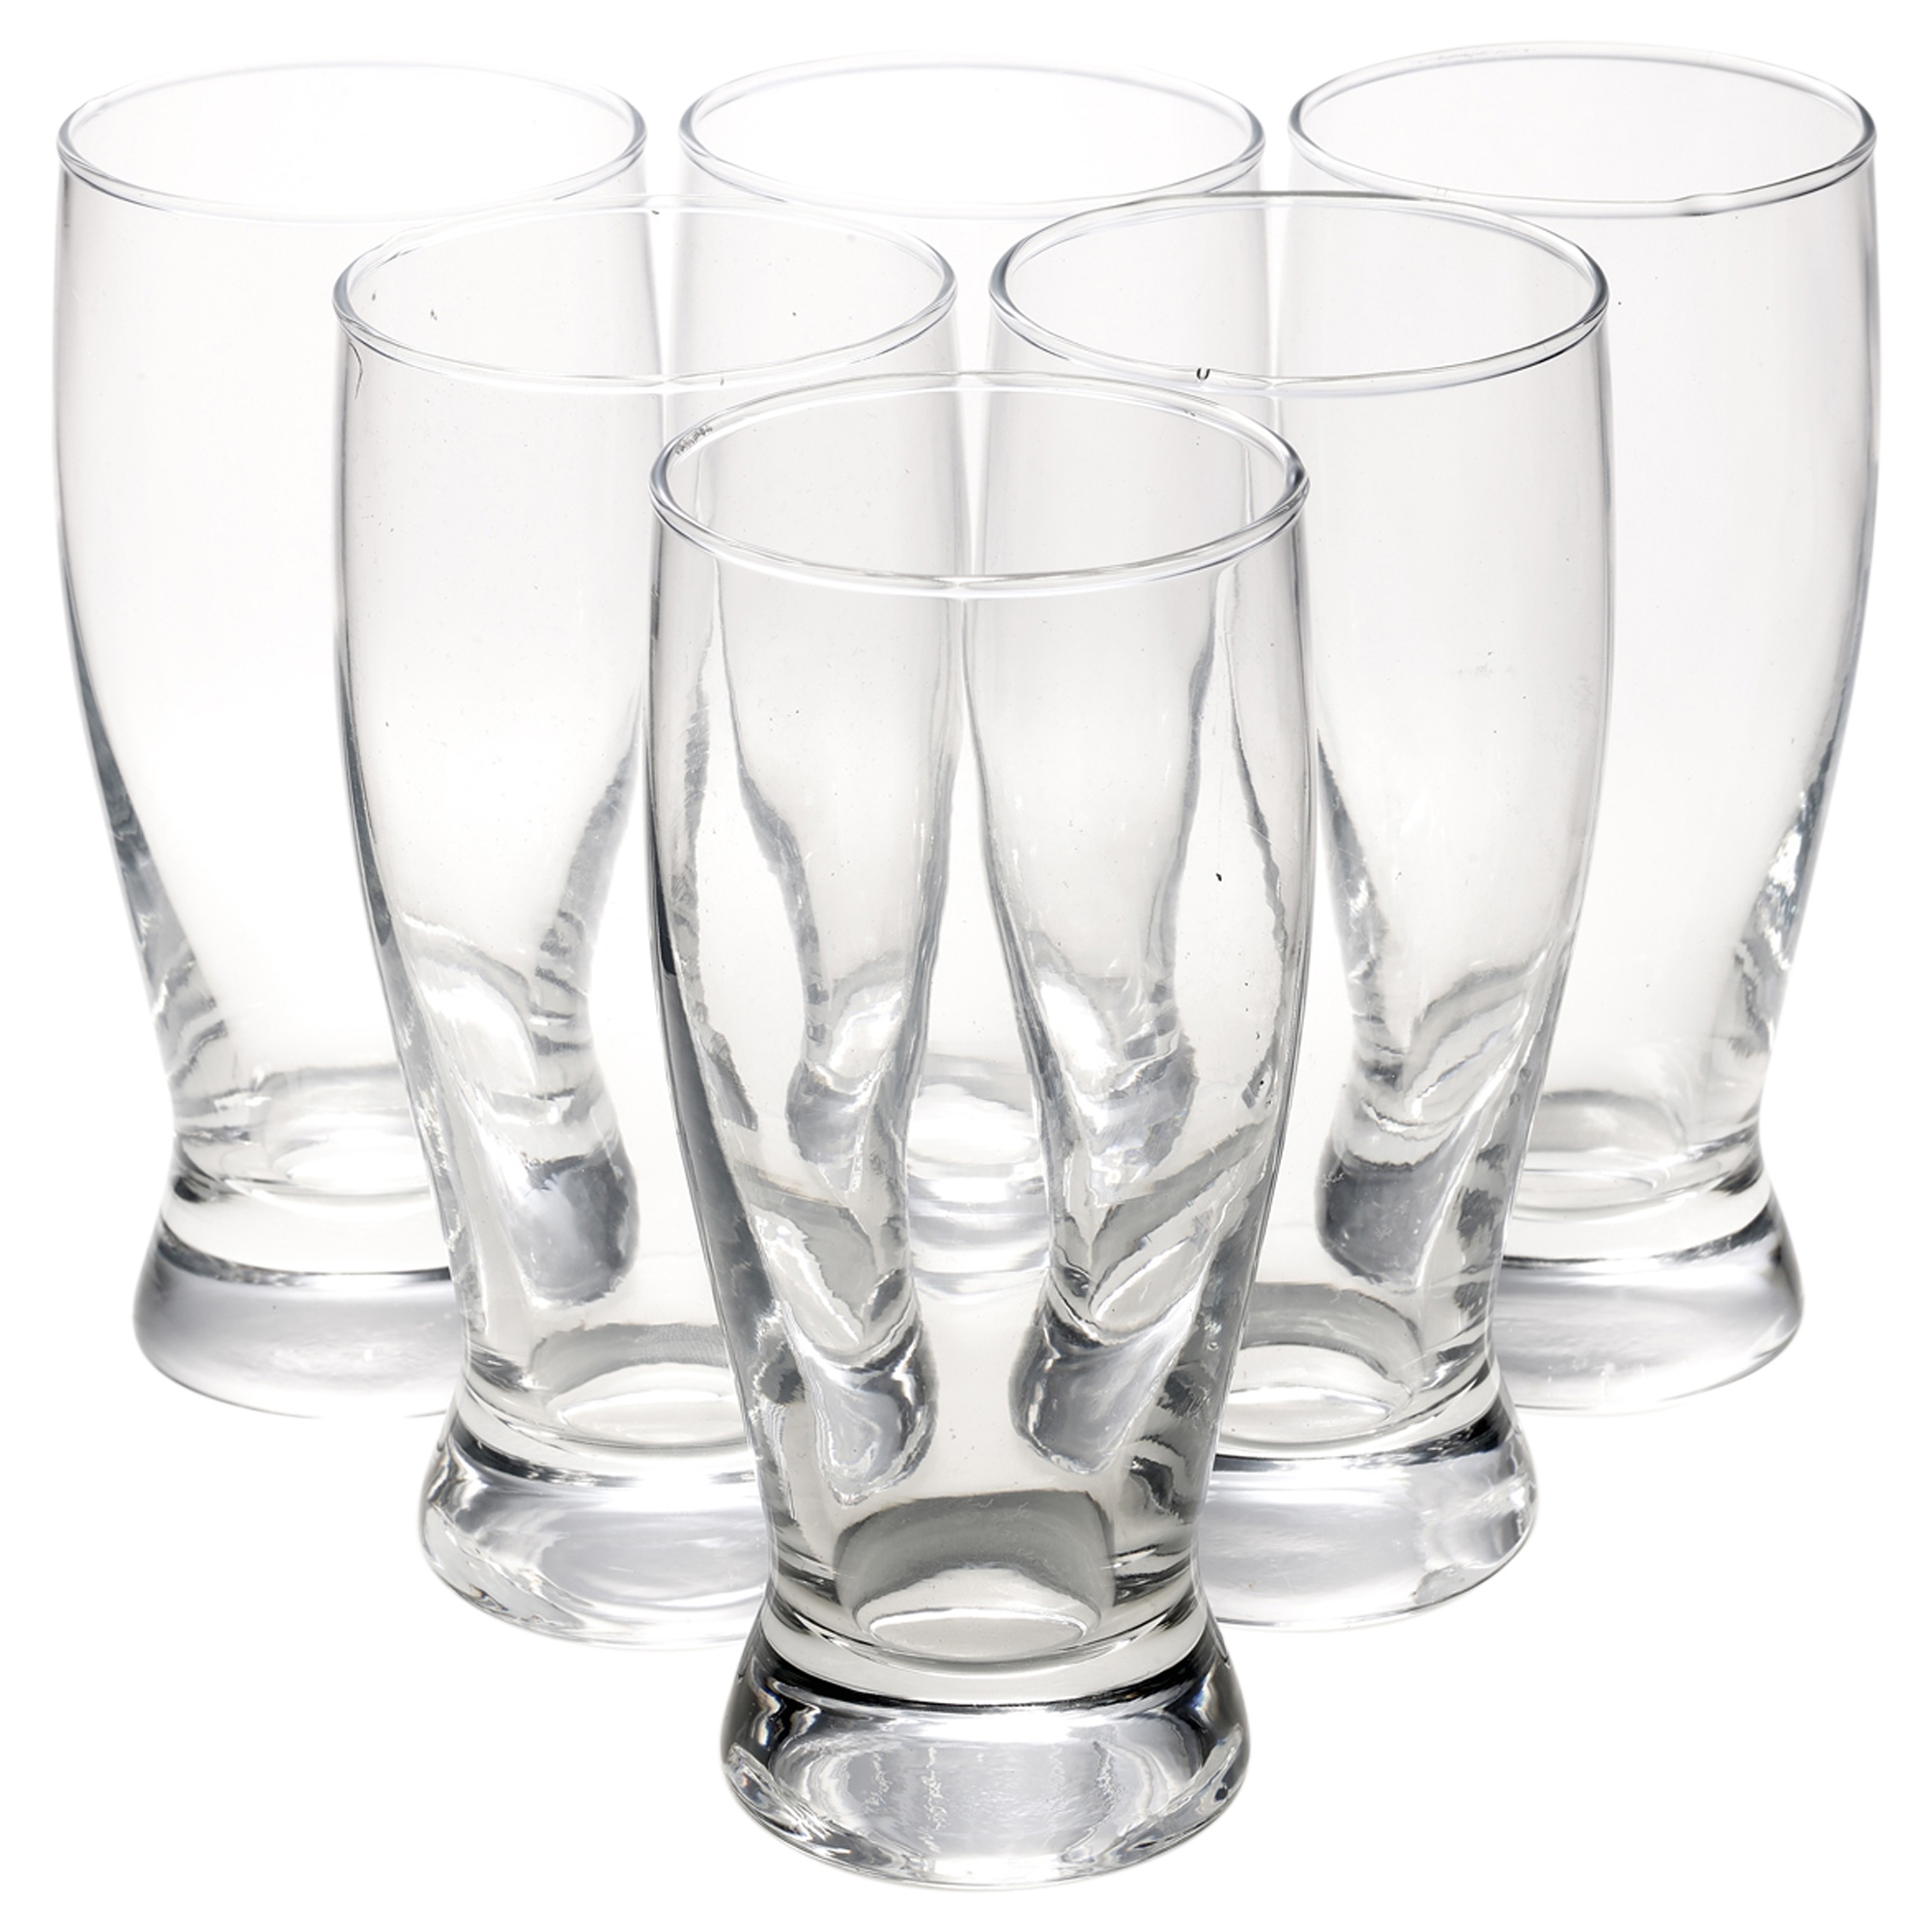 6x 330ml Clear Beer Lager Beverage Drink Glasses Cups